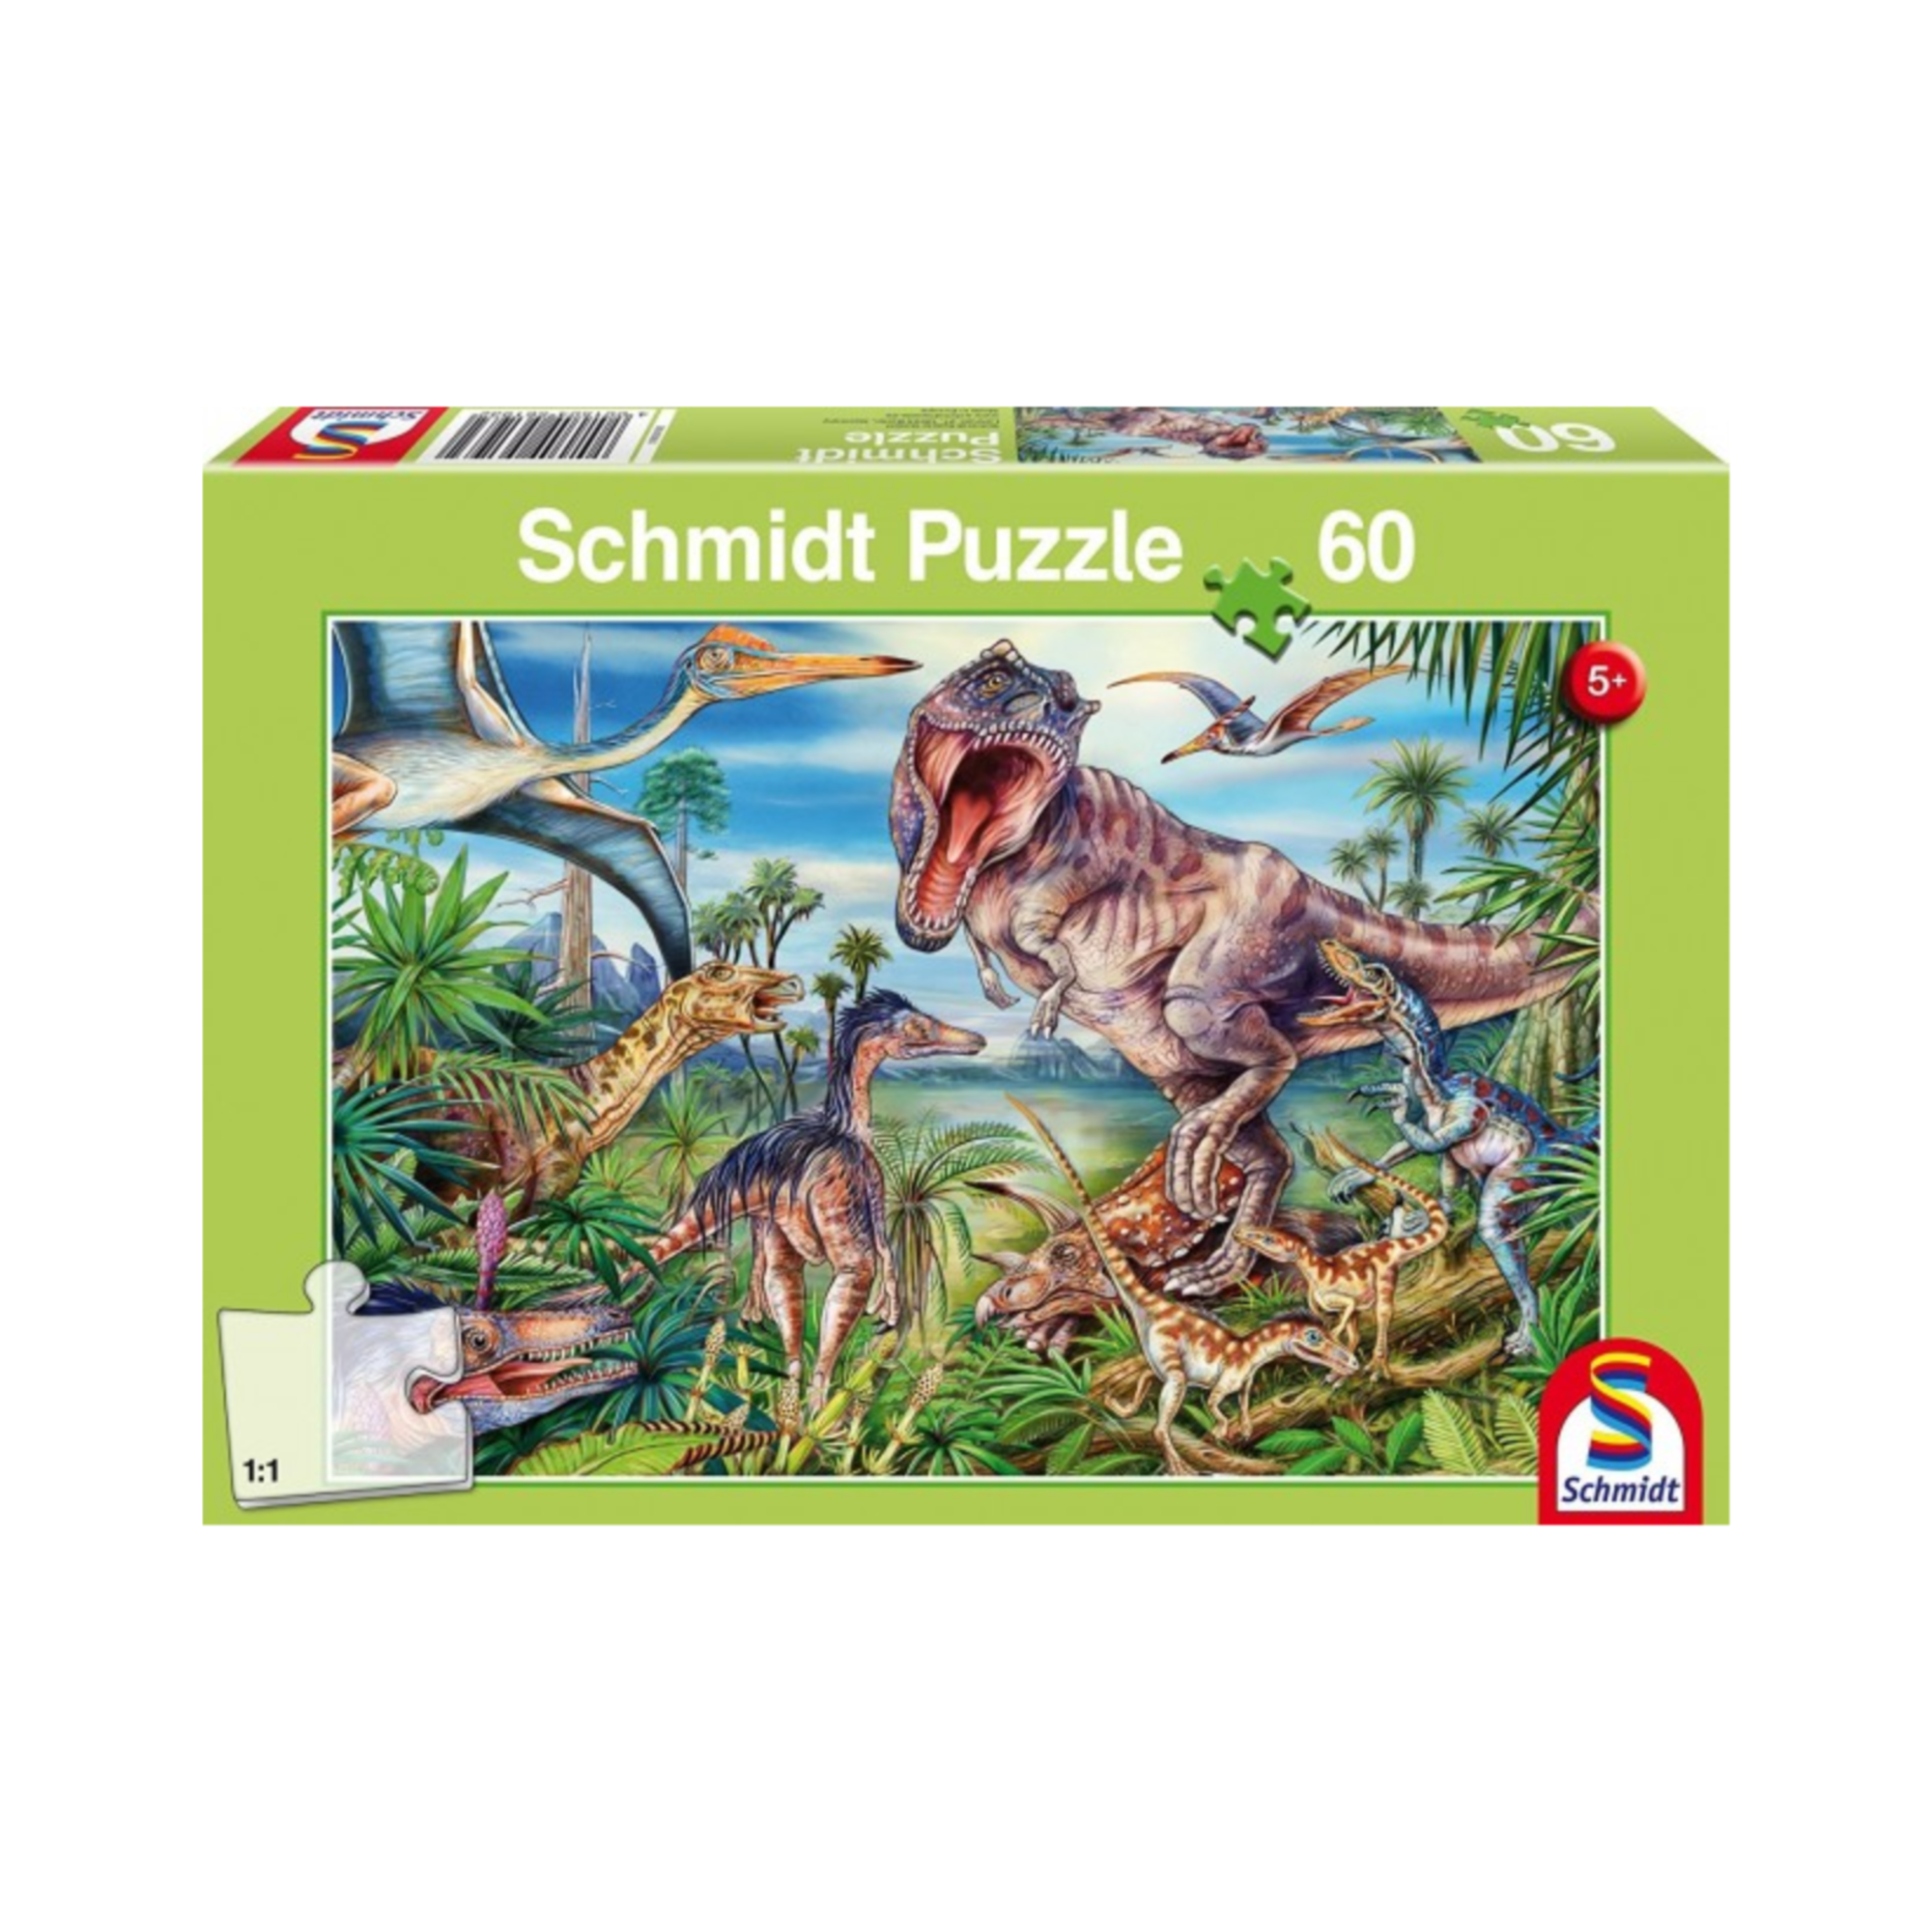 Schmidt Puzzle 60: Amongst the Dinosaurs